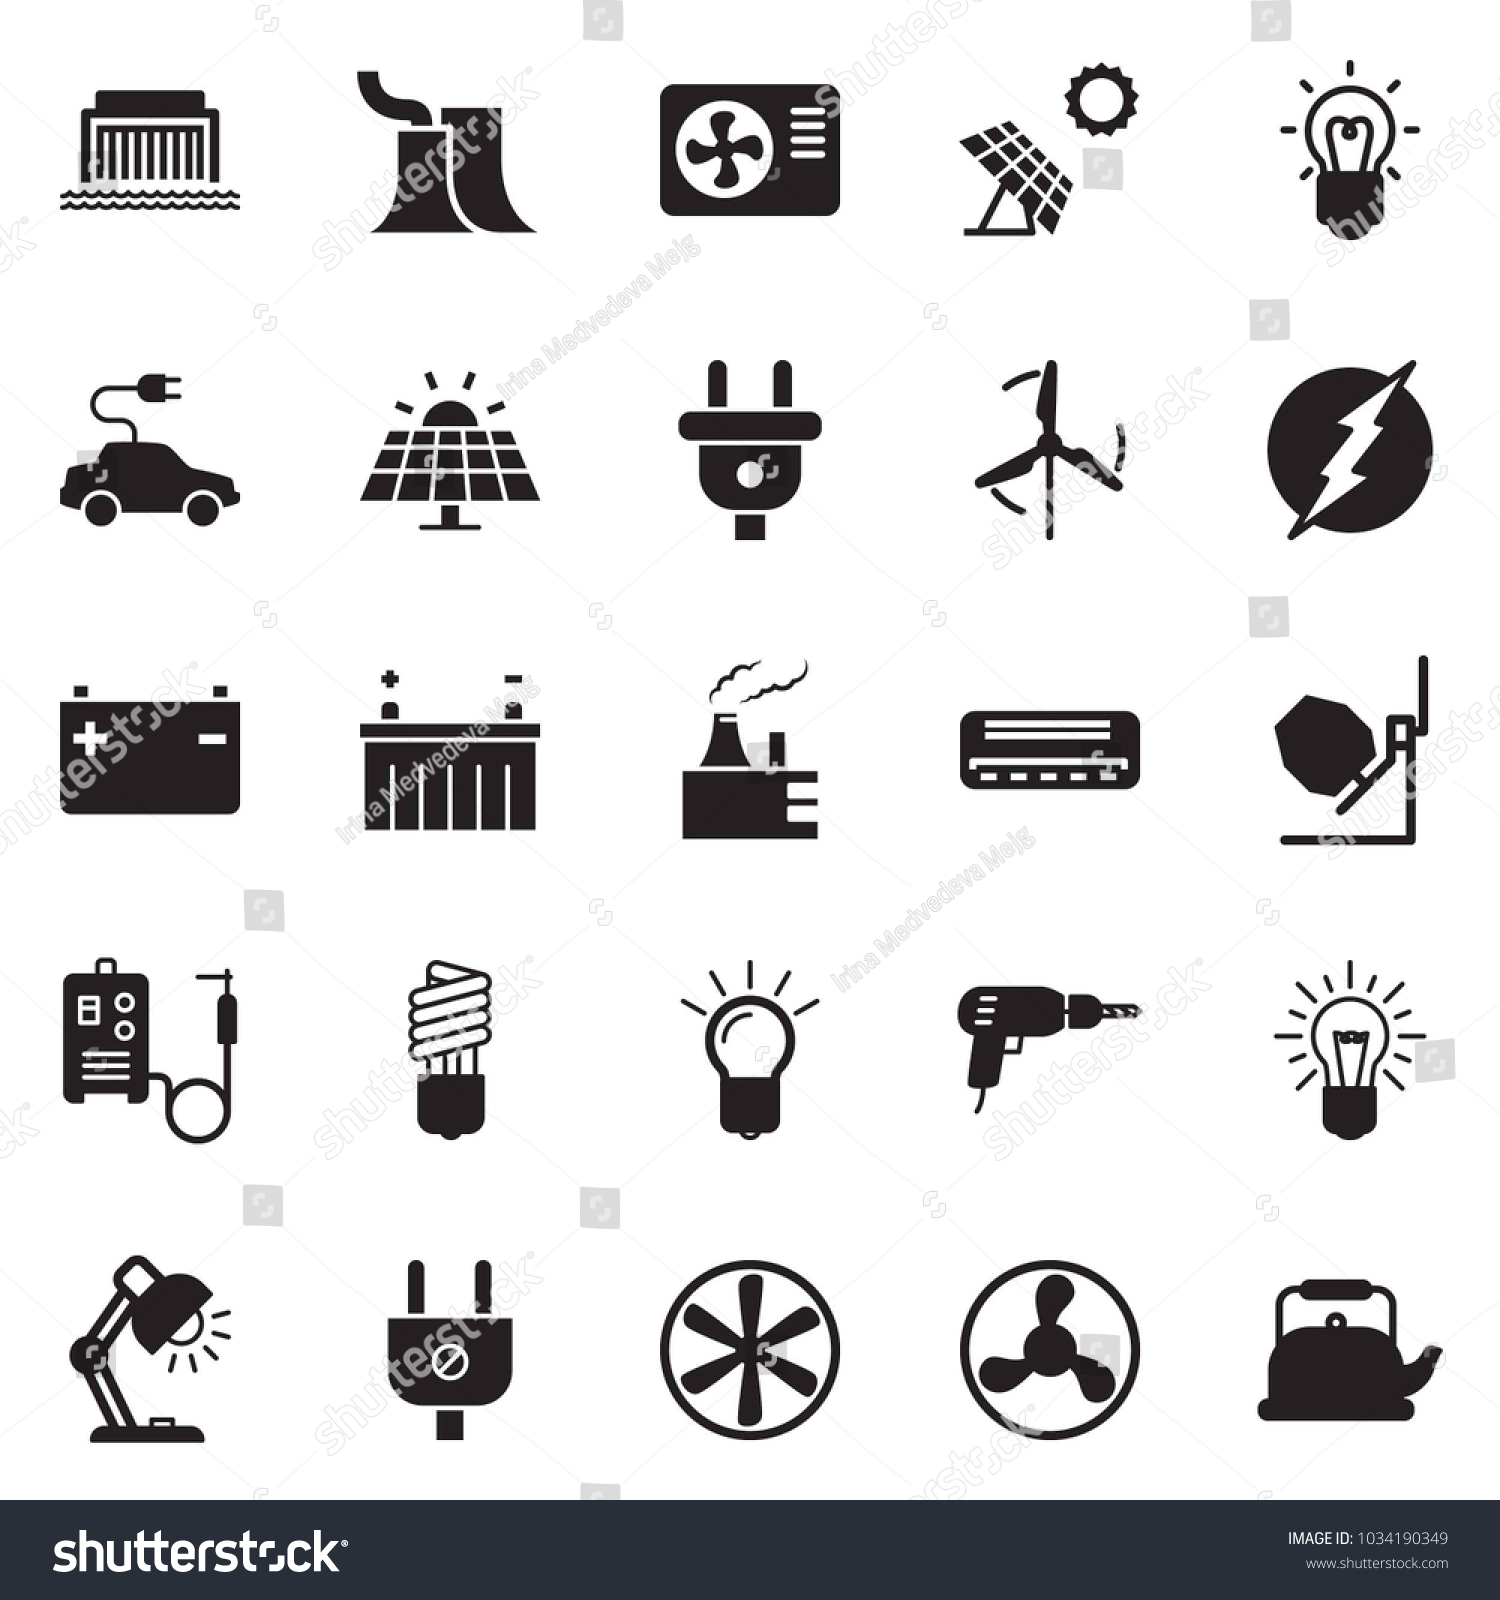 Solid Black Vector Icon Set Bulb Stock Royalty Free Circuit Panel Id Chart Kit Quickly And Table Lamp Drill Concrete Mixer